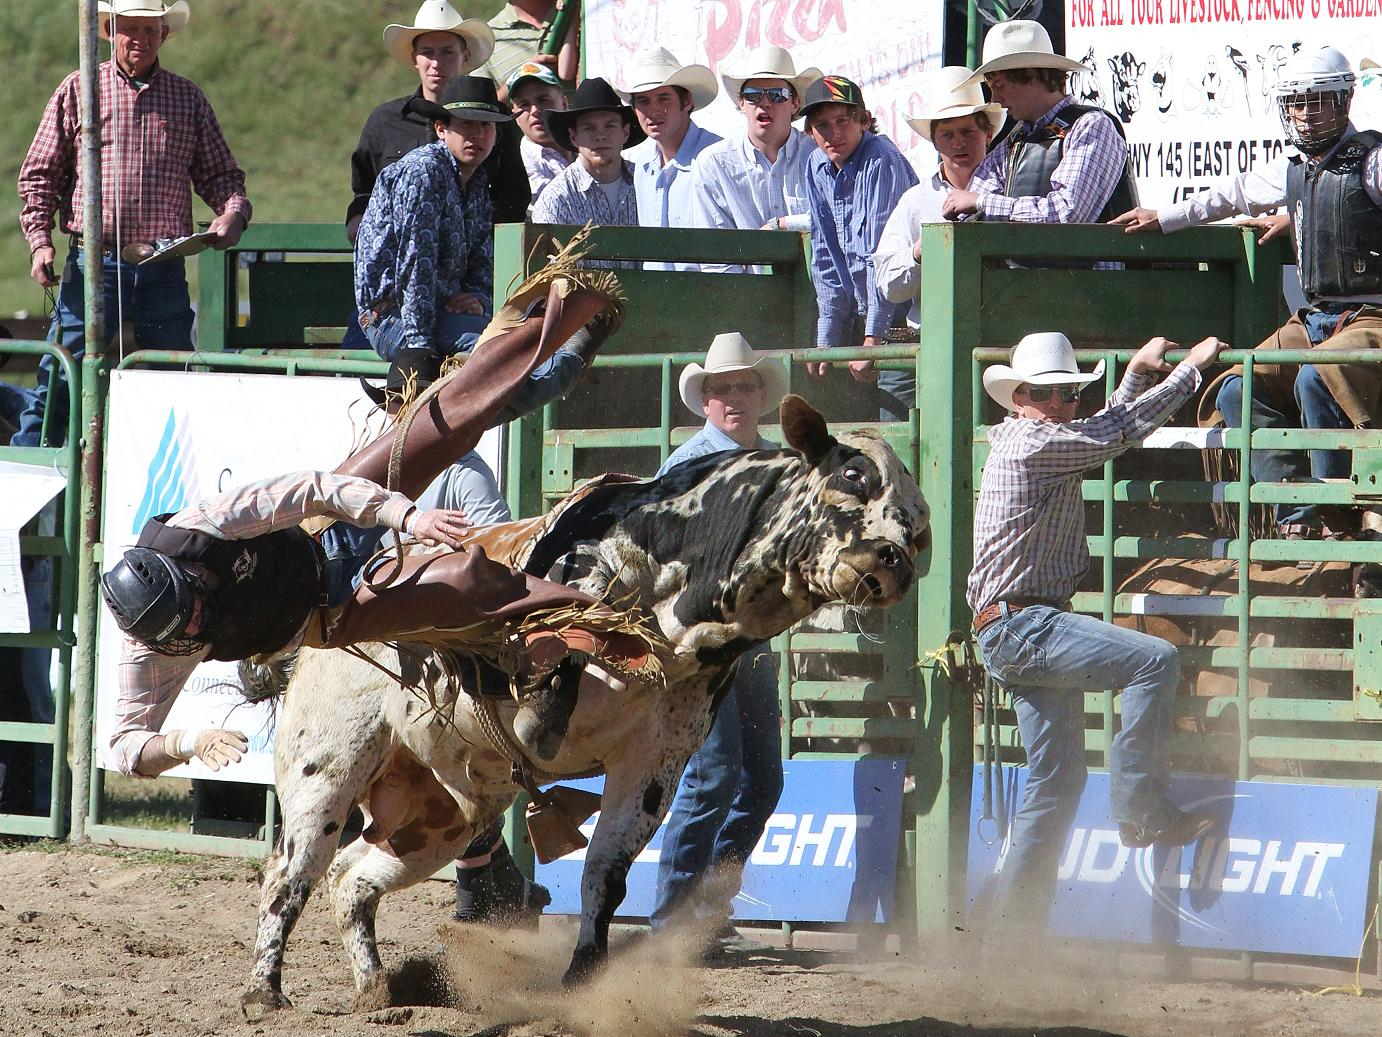 Bull Rider 2011 - photo courtesy of Susanne Updike-Waite